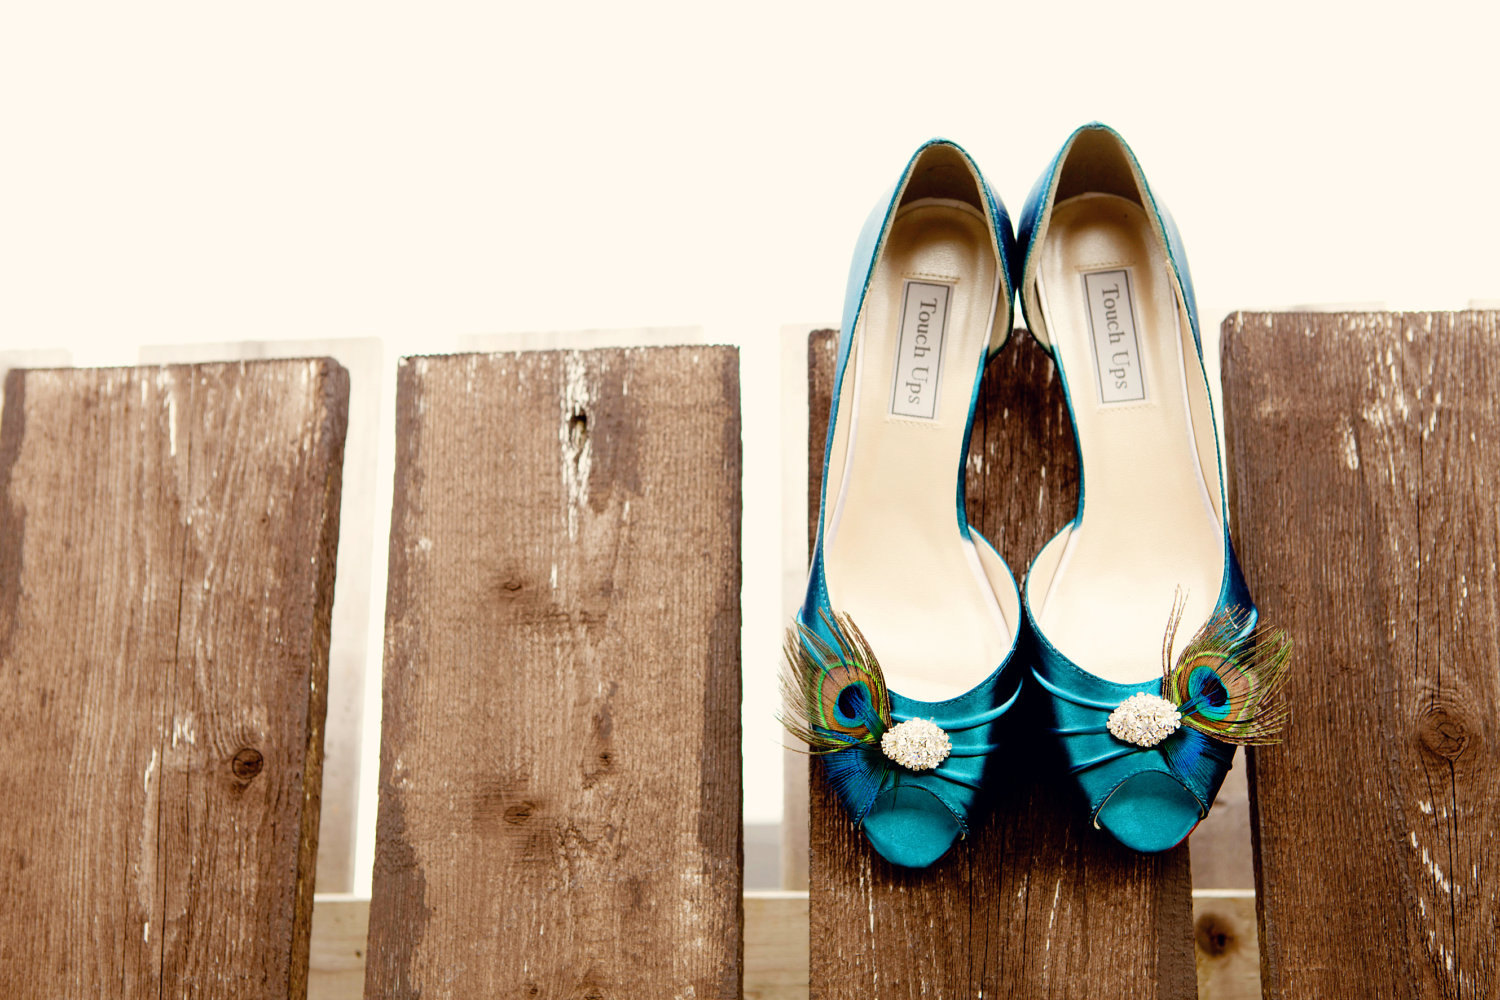 Bridal-style-wedding-ideas-something-blue-etsy-bridal-shoes-peacock-feathers.original